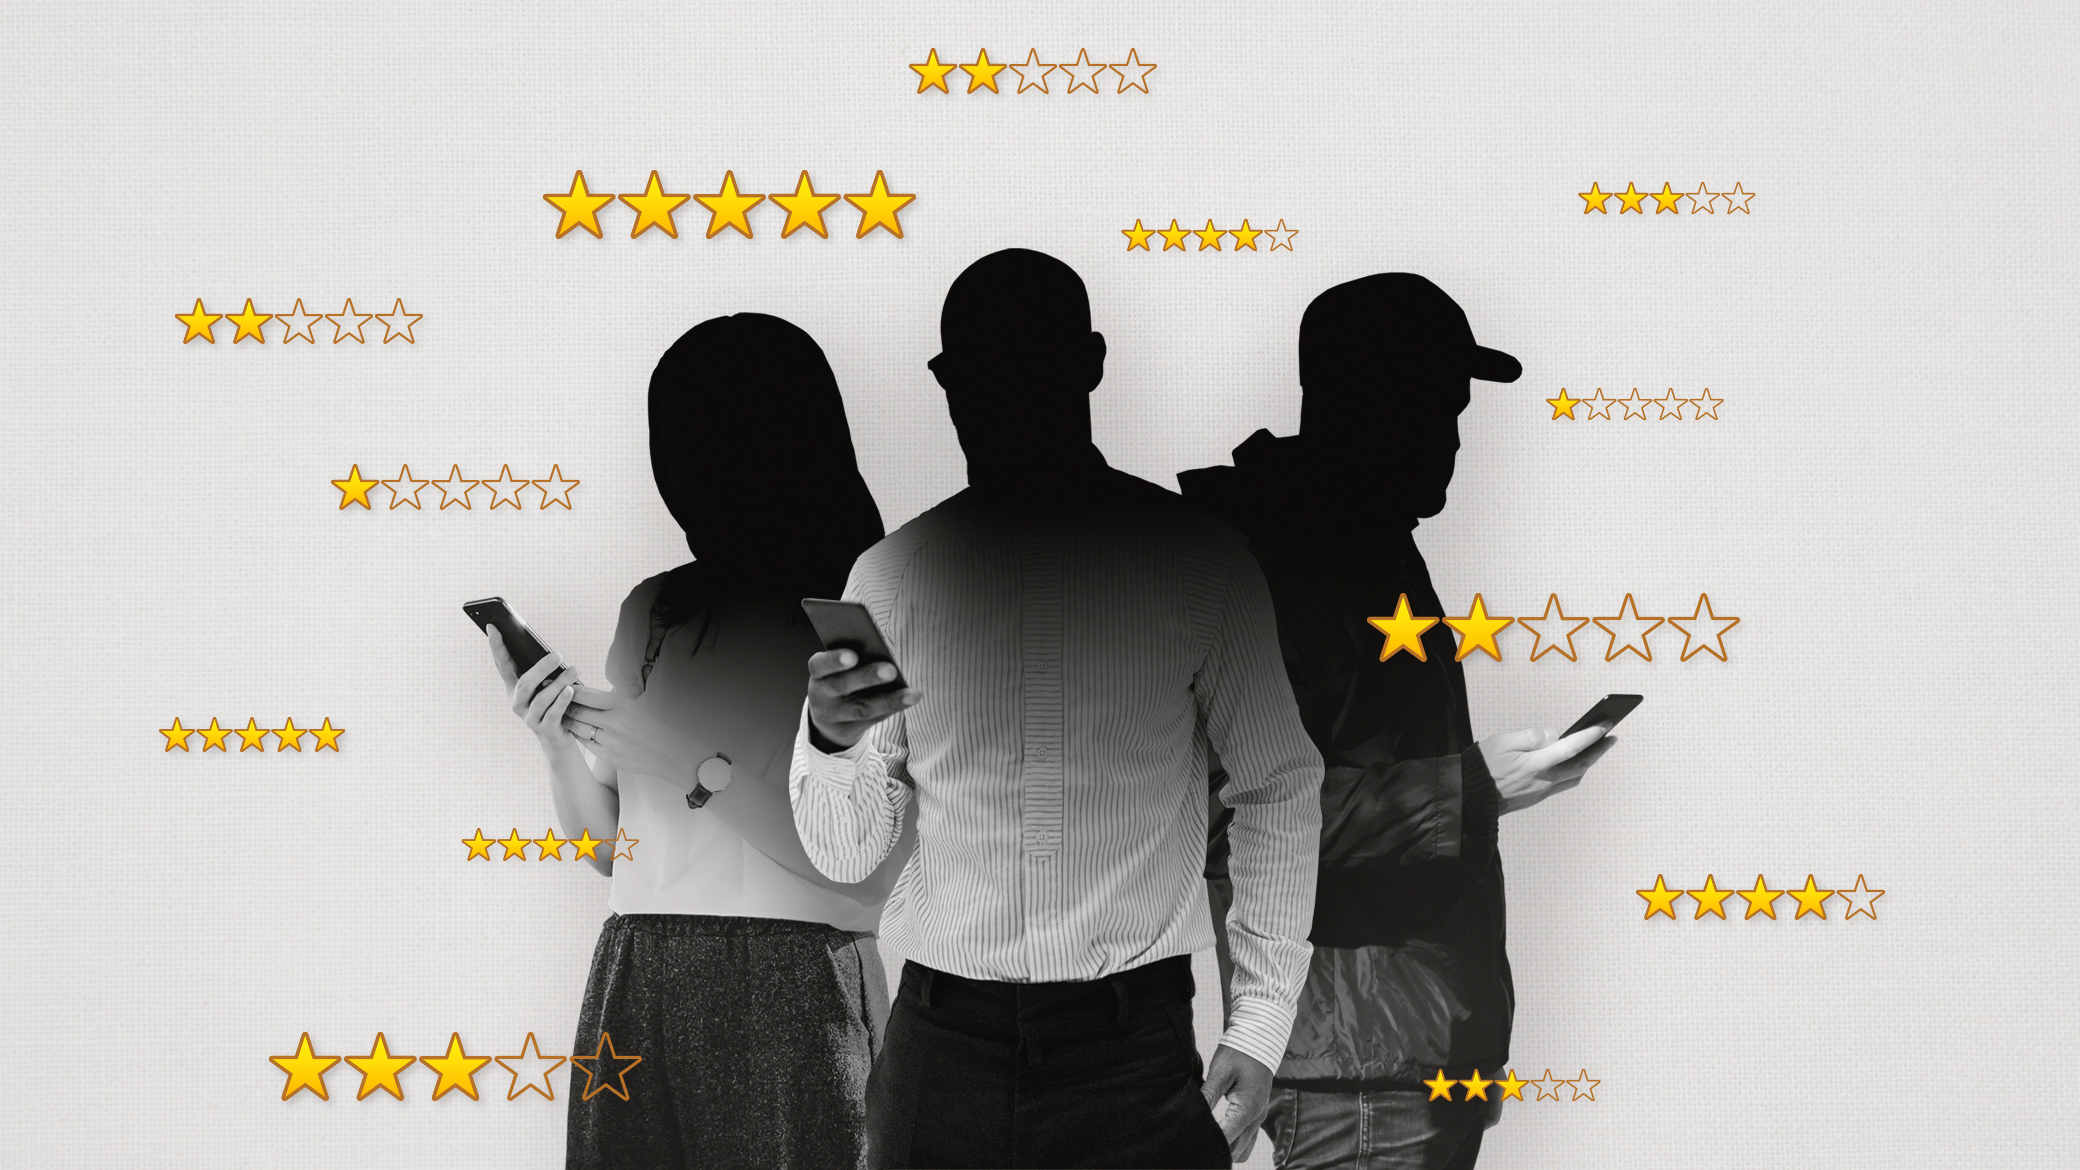 Amazon can't end fake reviews, but its new system might drown them out